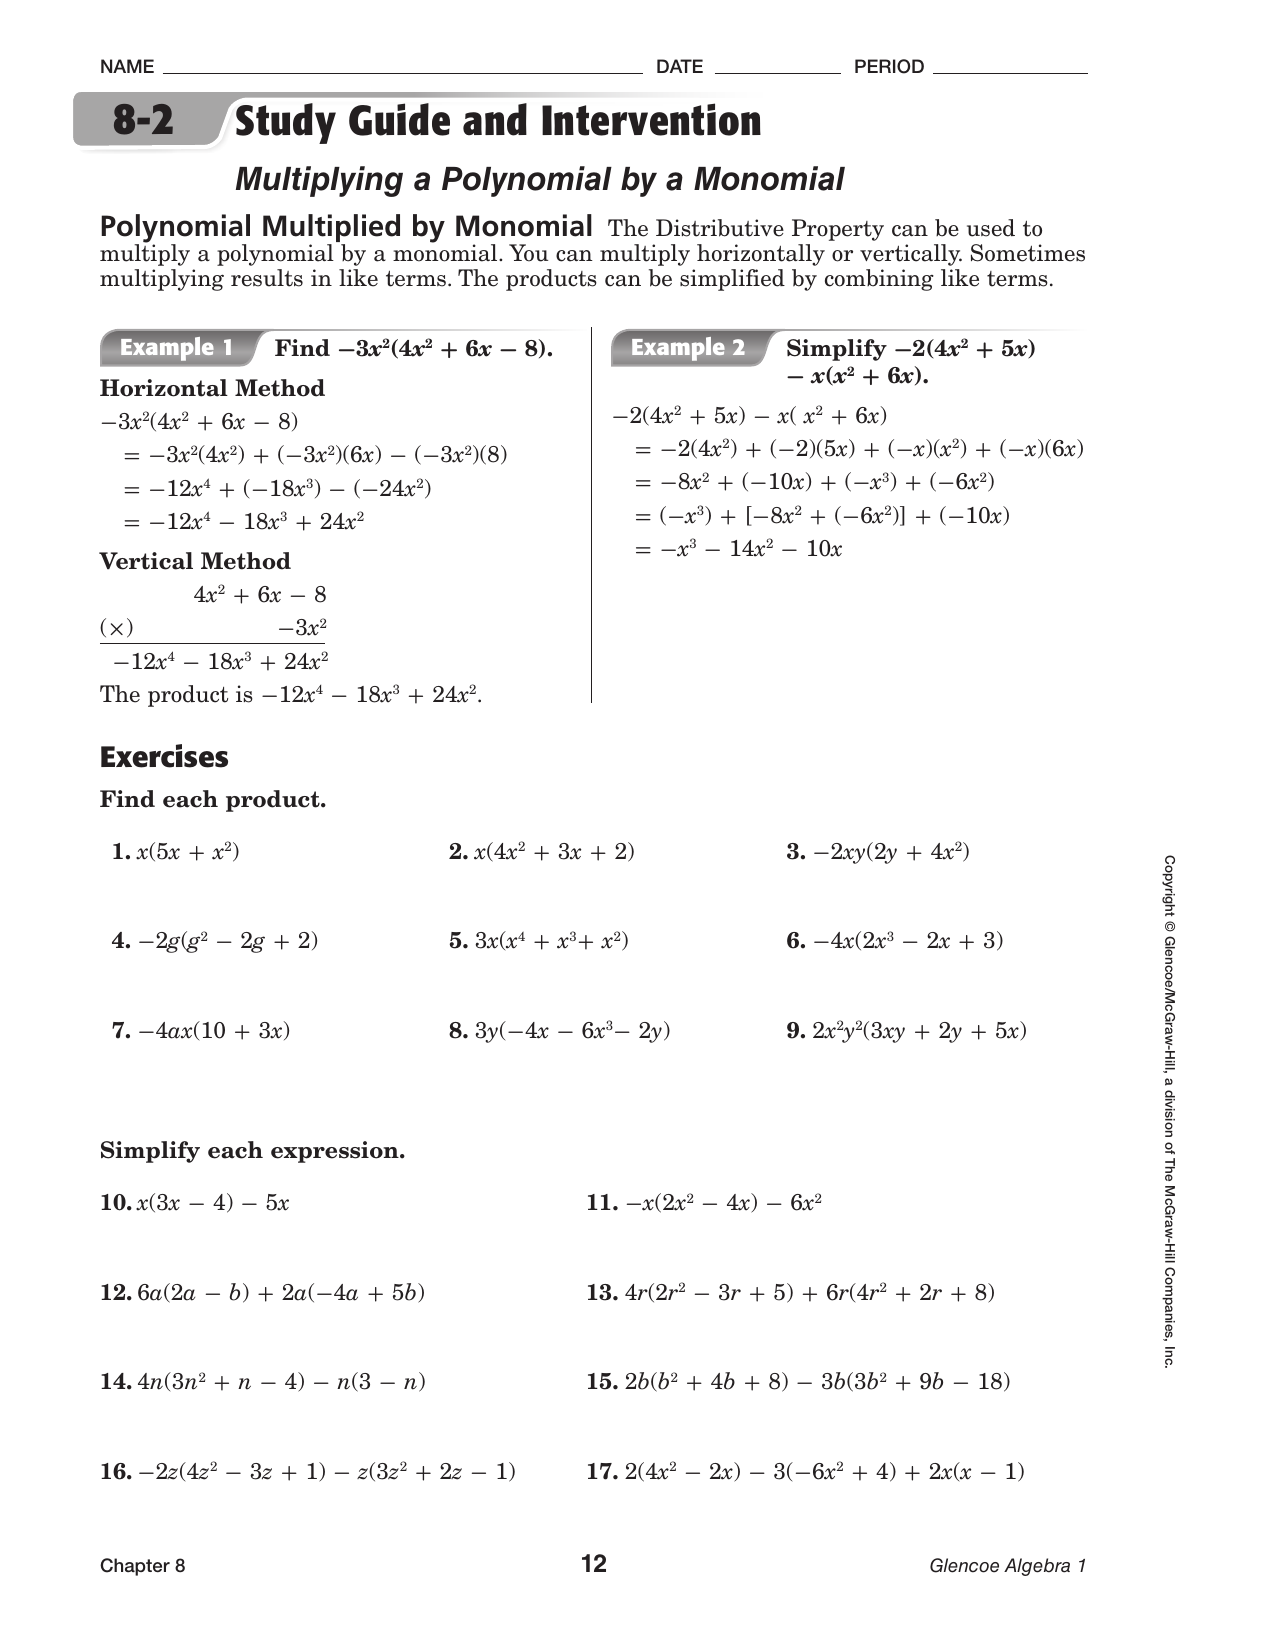 Chapter 8-2 Study Guide and Intervention